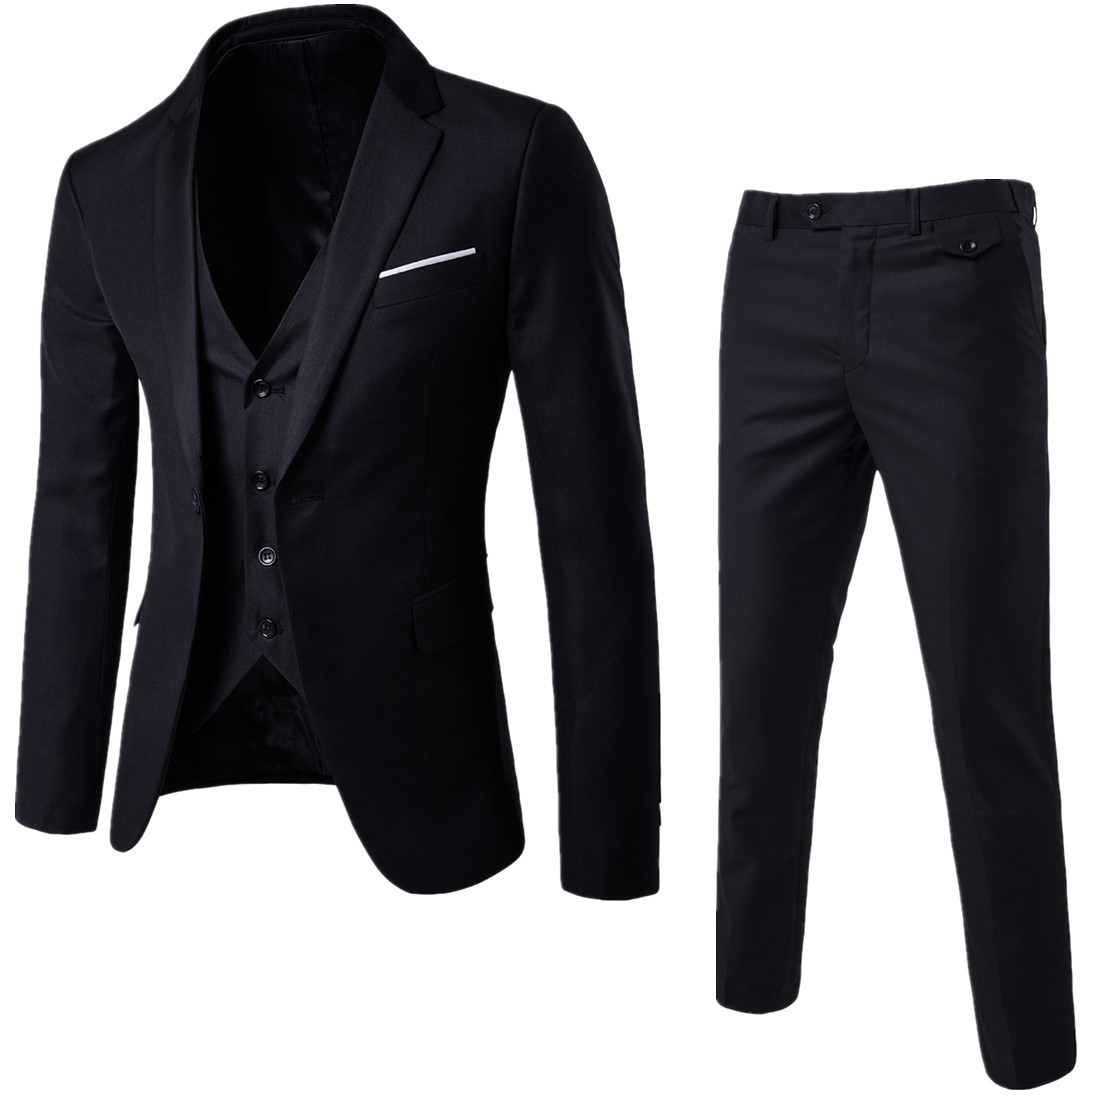 2019 Spring And Autumn New Style MEN'S Suit Set Three-piece Set Casual Handsome Suit Yuppie Coat Groom Formal Dress